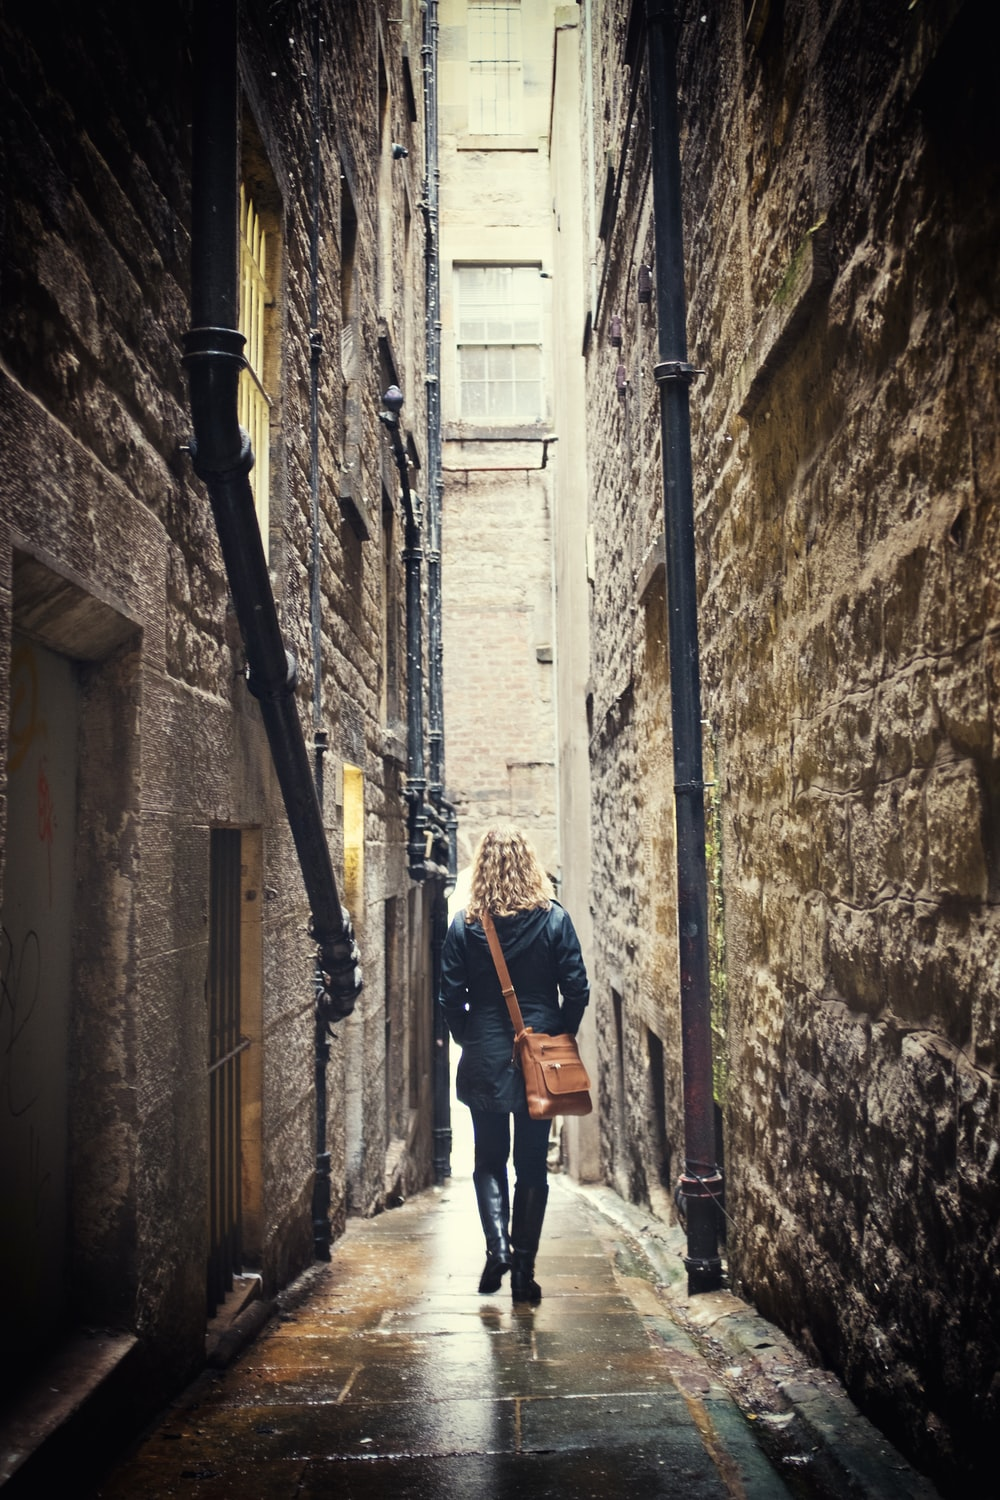 woman carrying brown leather shoulder bag walking on narrow concrete pathway between concrete buildings during daytime